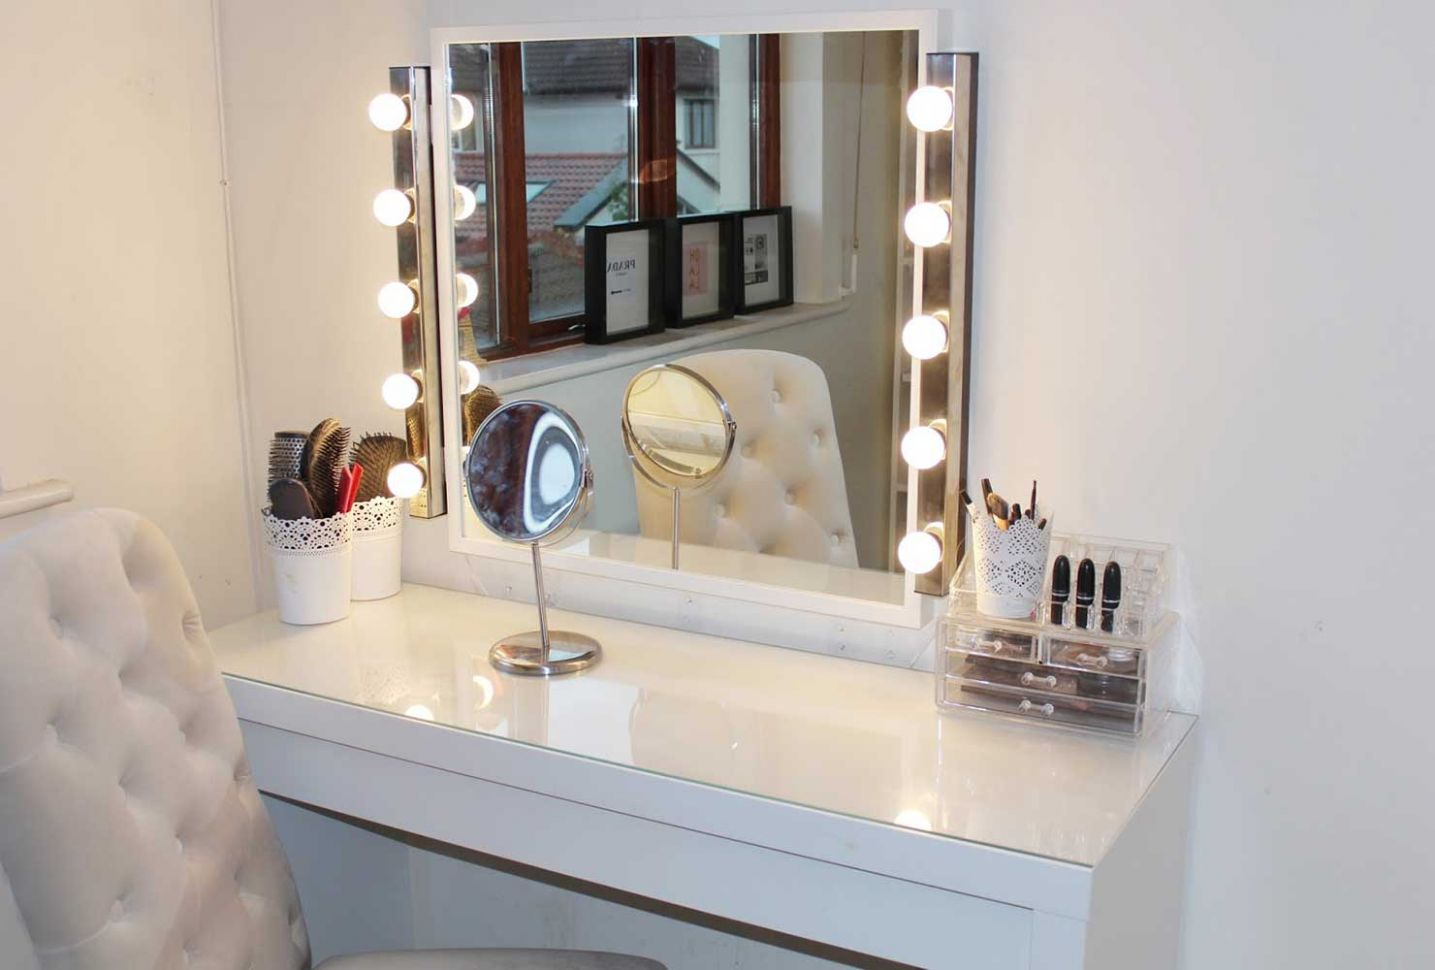 11 Makeup Room Ideas To Brighten Your Morning Routine | Shutterfly - makeup room diy